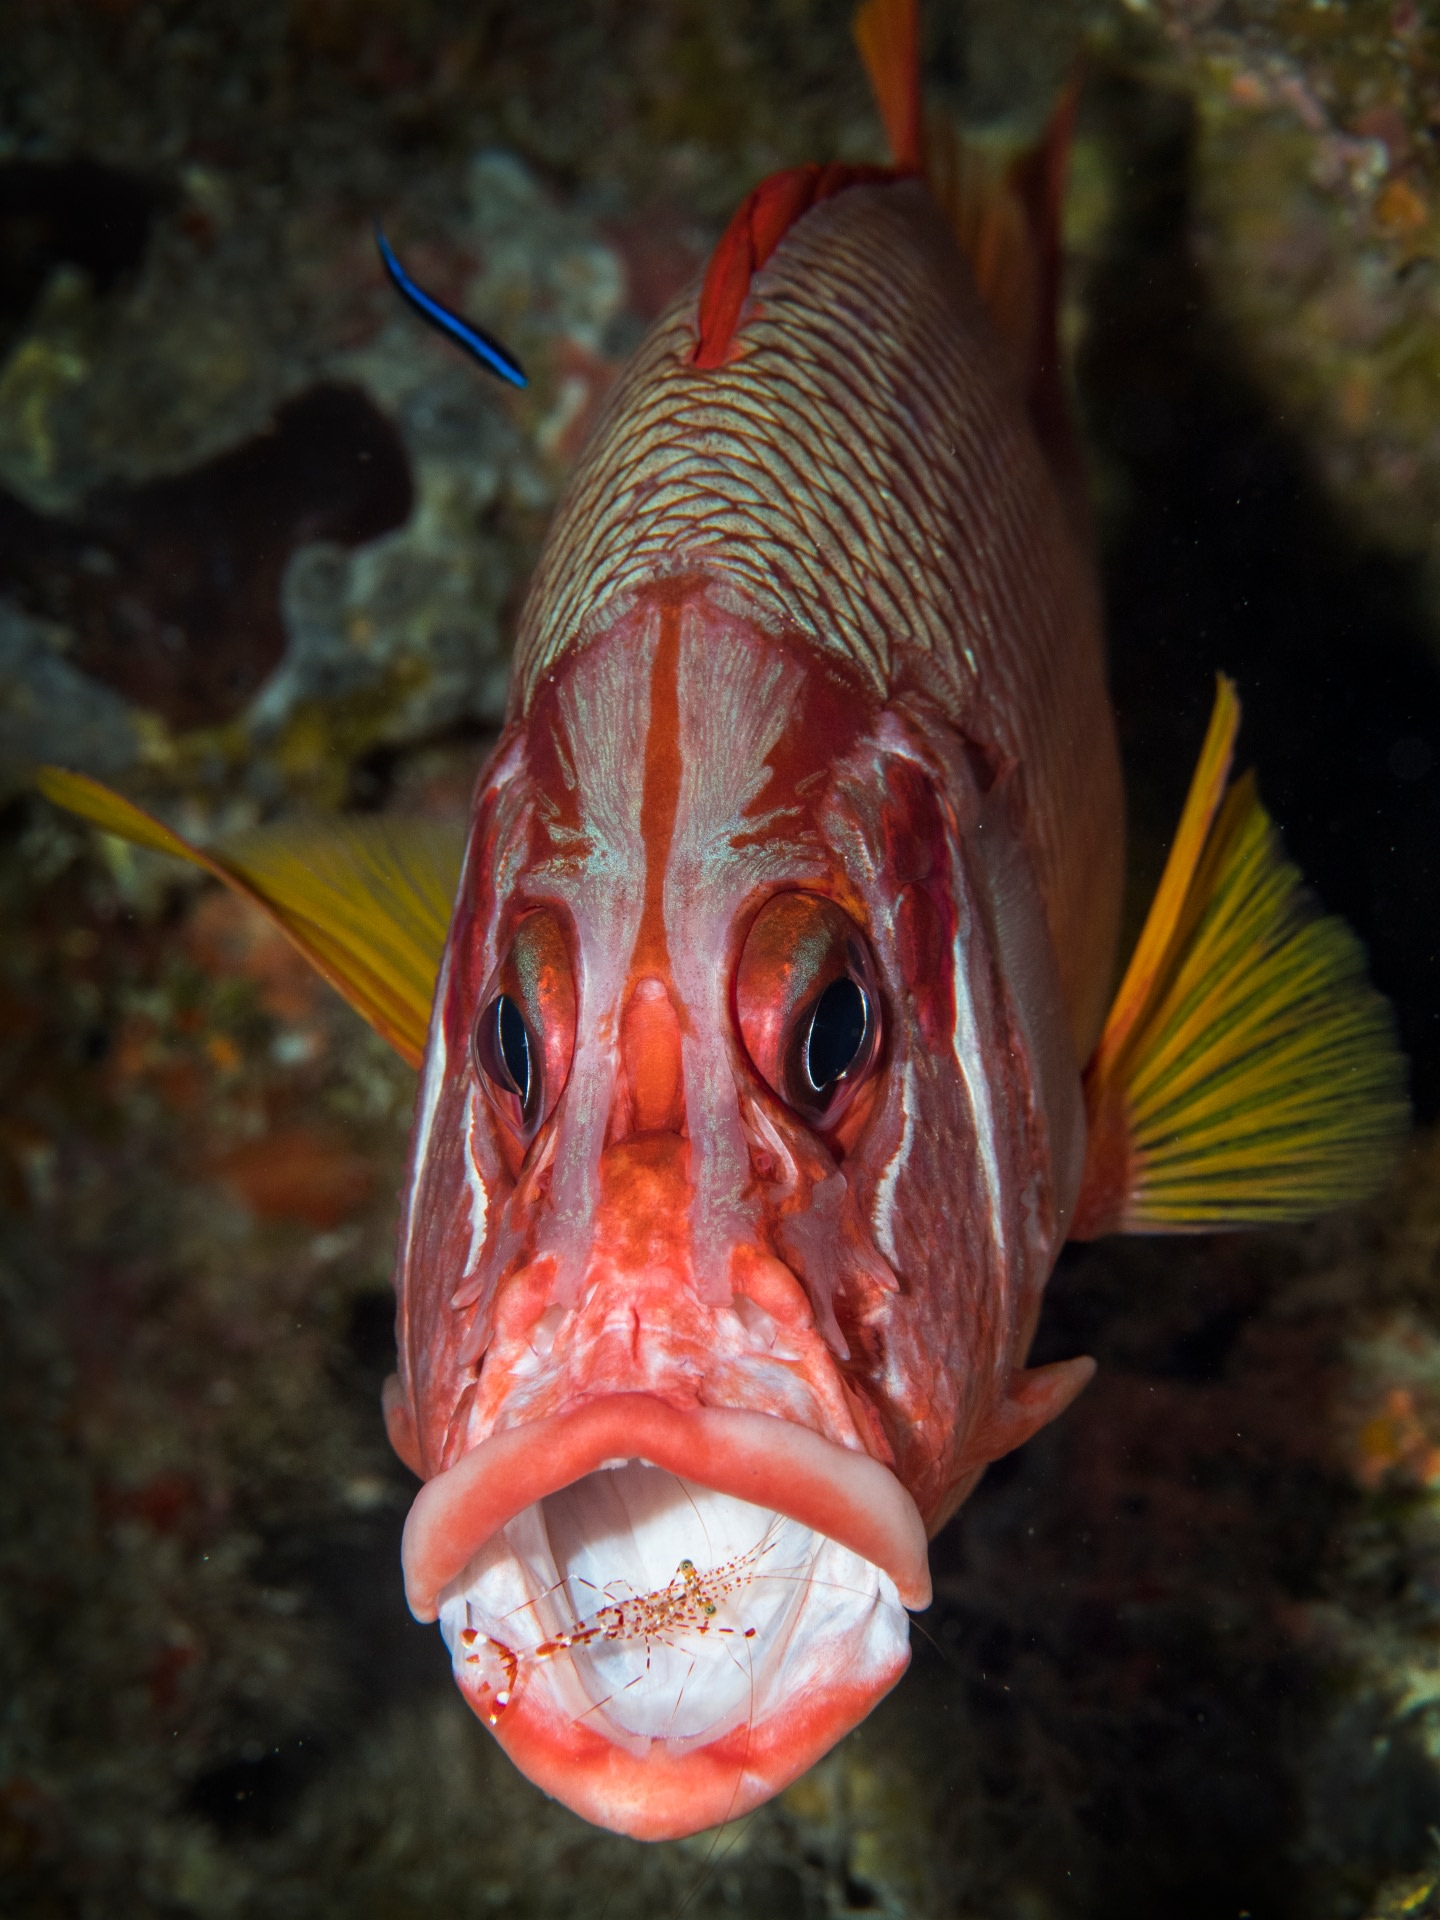 A sabre squirrelfish getting a wholesome cleaning, as a cleaner shrimp works in its mouth and a cleaner wrasse tends to its scales. Photo: Umeed Mistry